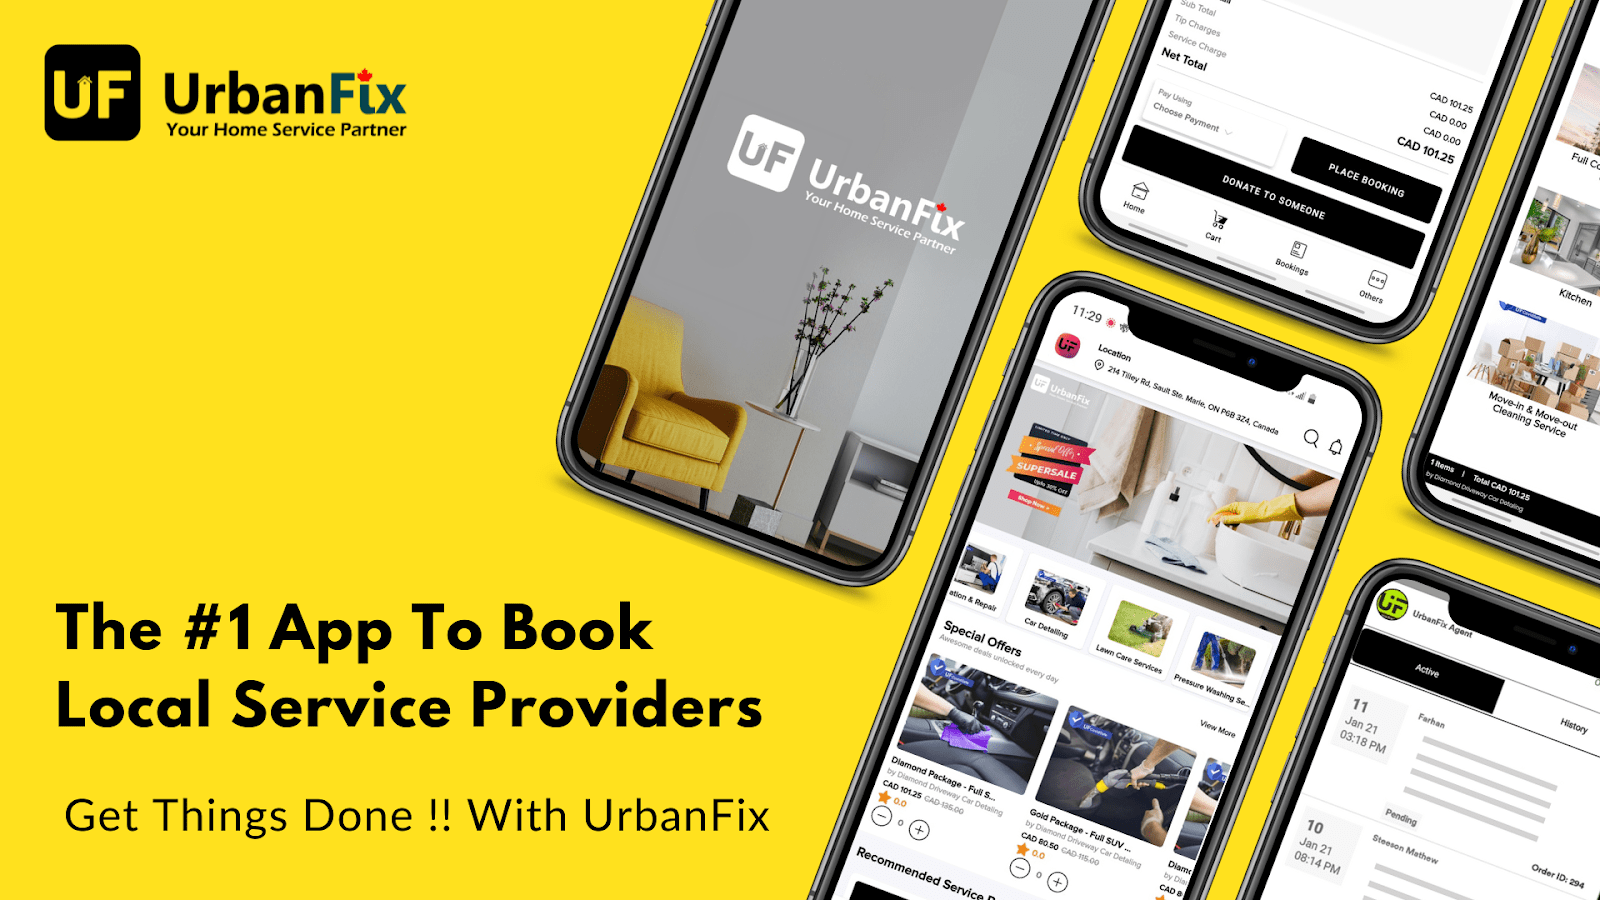 UrbanFix: The #1 app to book local service providers